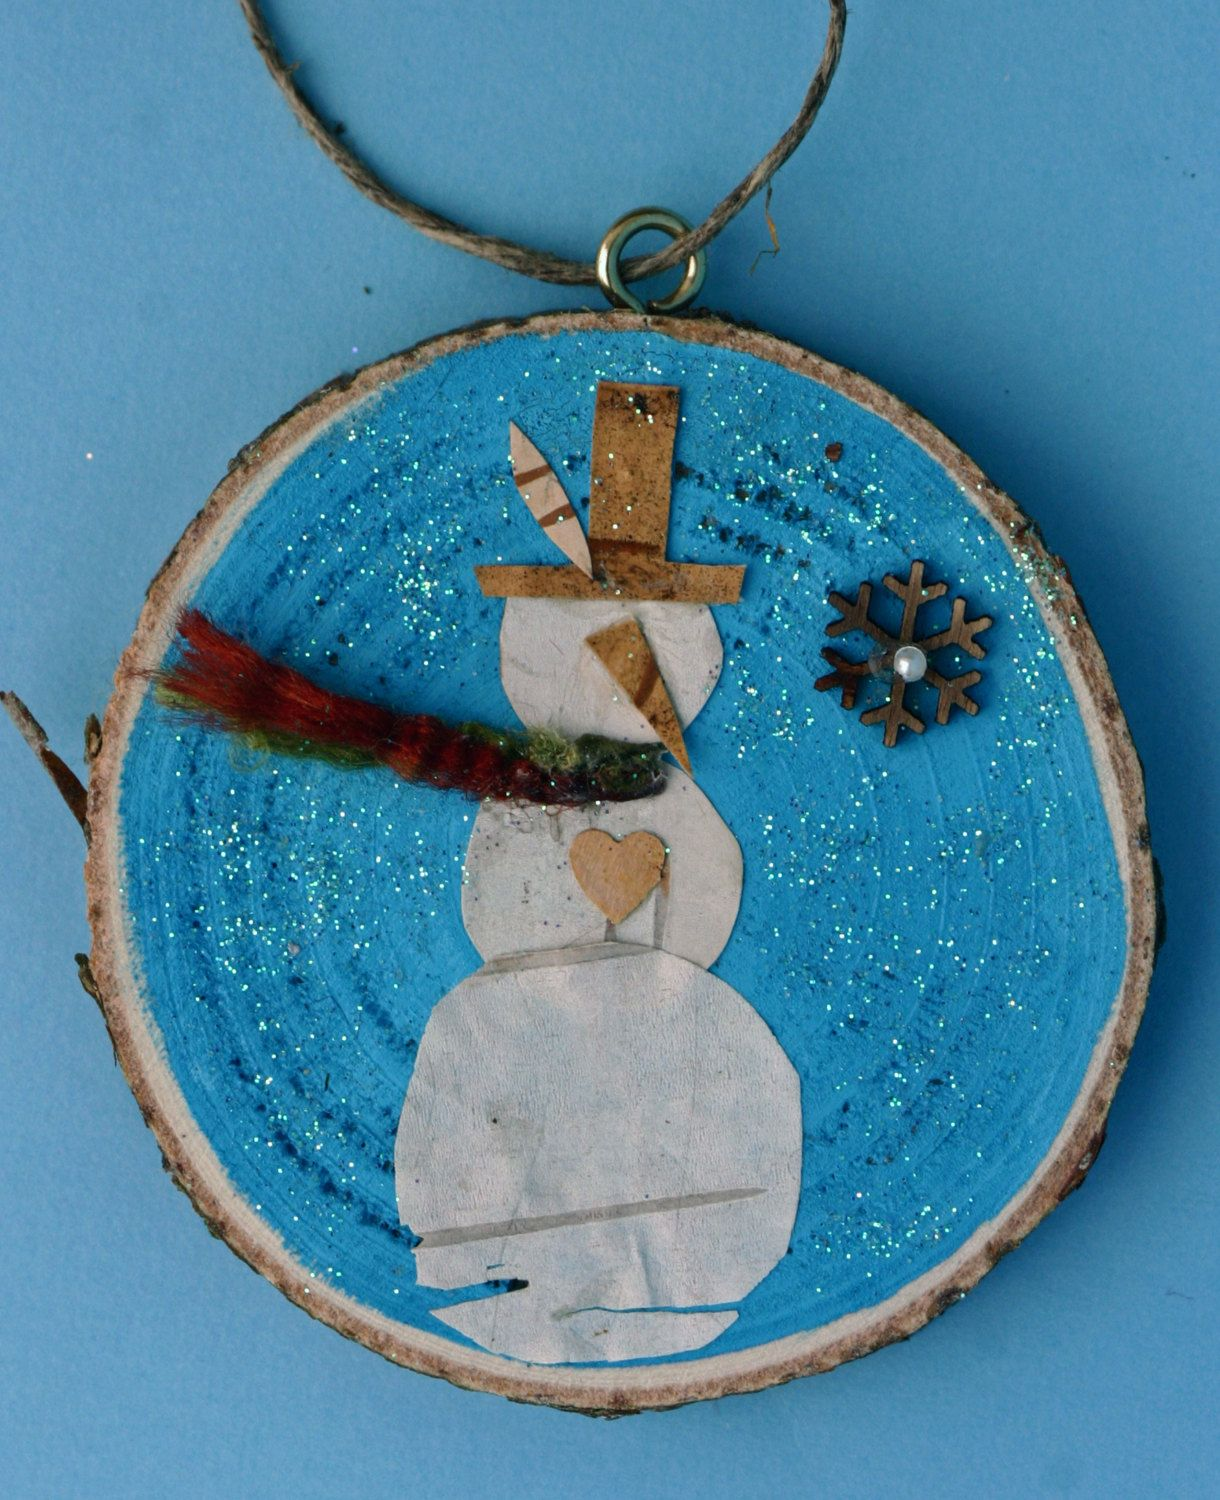 Birch Tree Bark Snowman Wood Slice Christmas Ornament Natural Small Round Art Blue And White Turquoise Winter Glitter